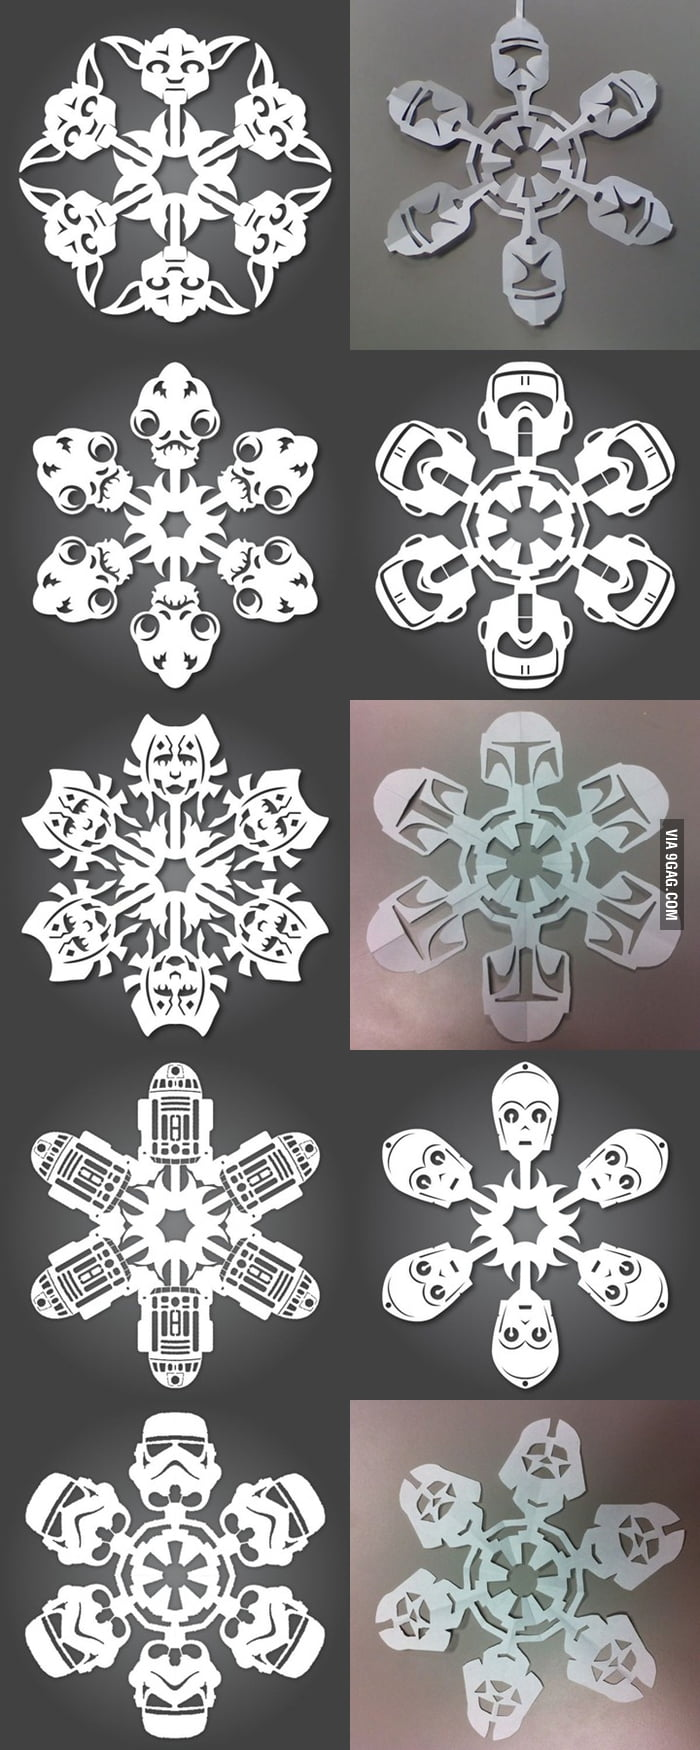 Paper snowflake level: ASIANS!